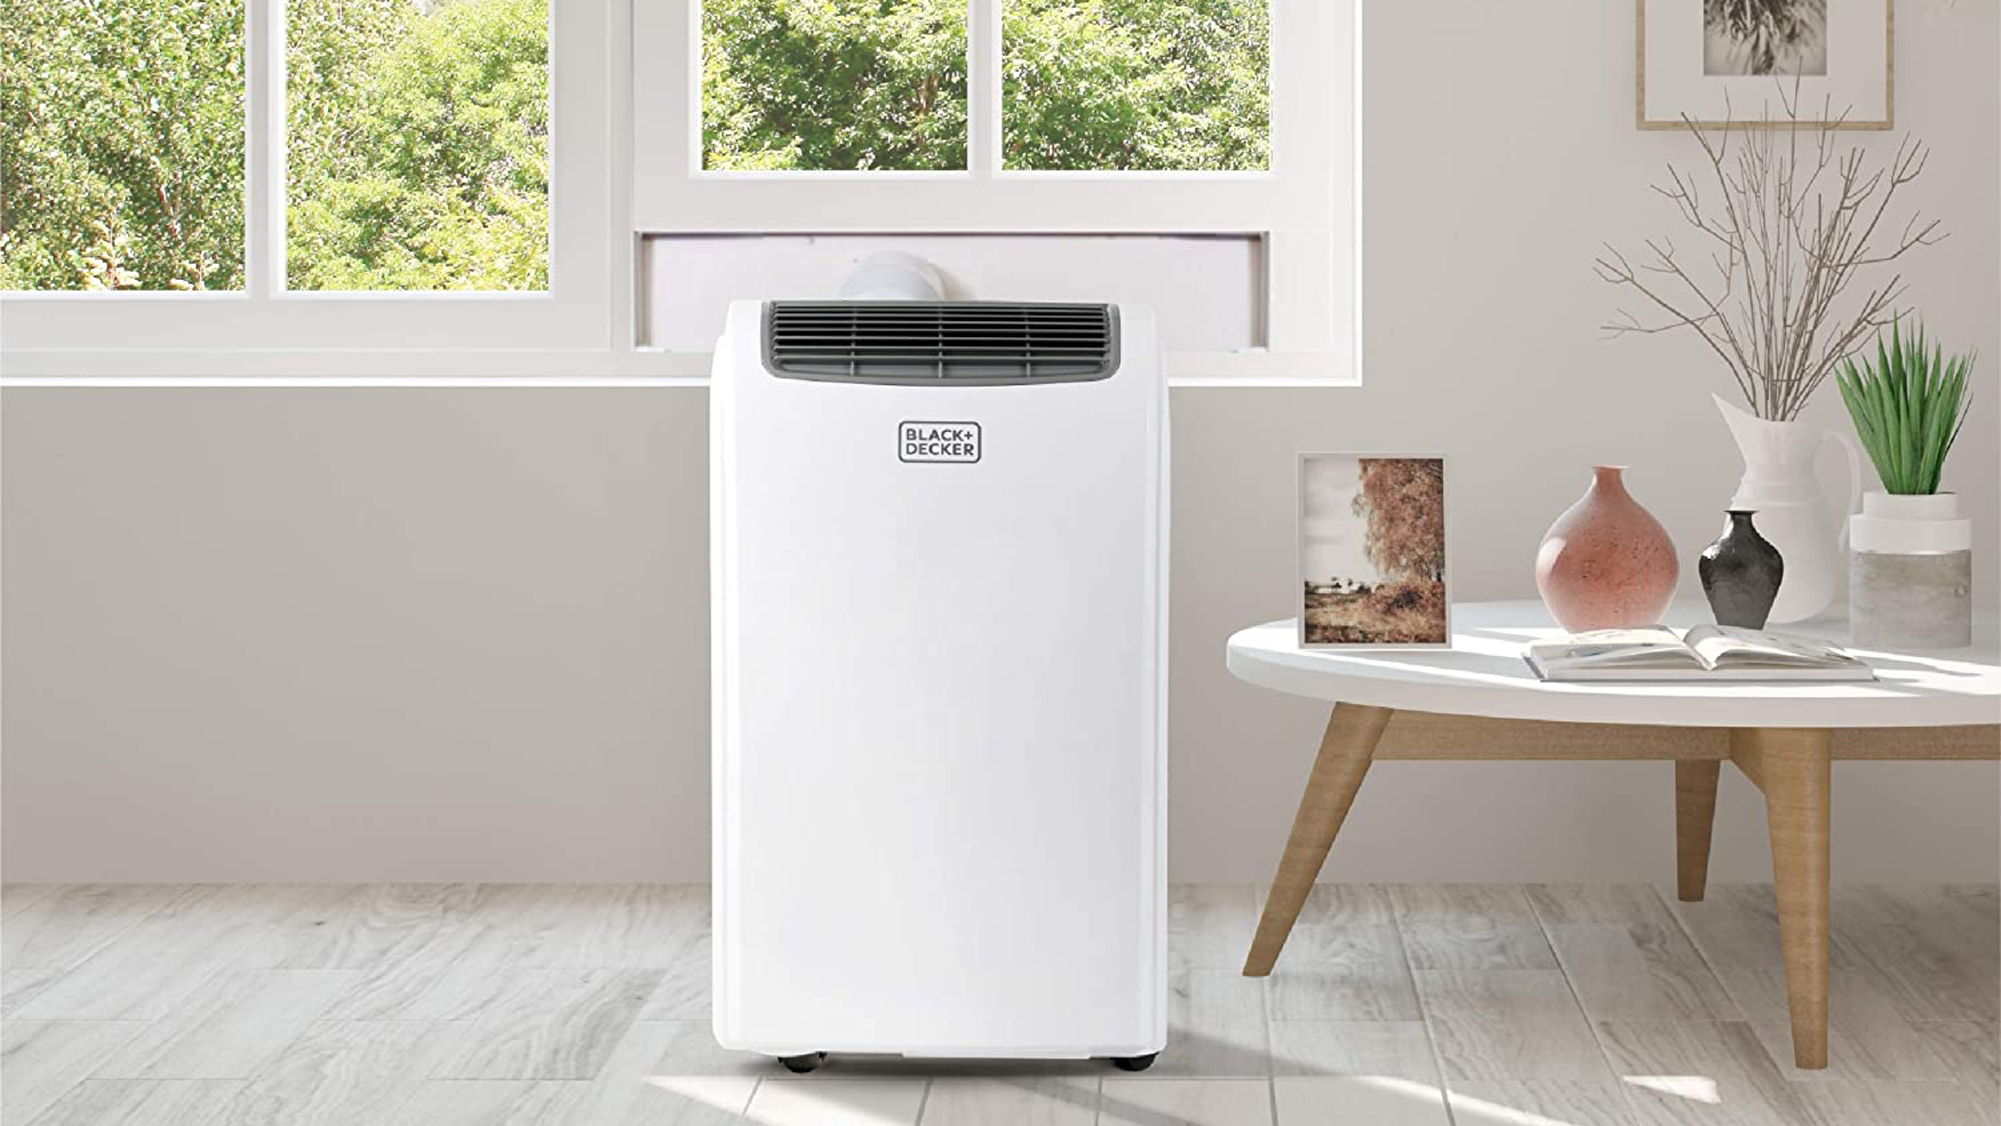 cooling products: portable air conditioner